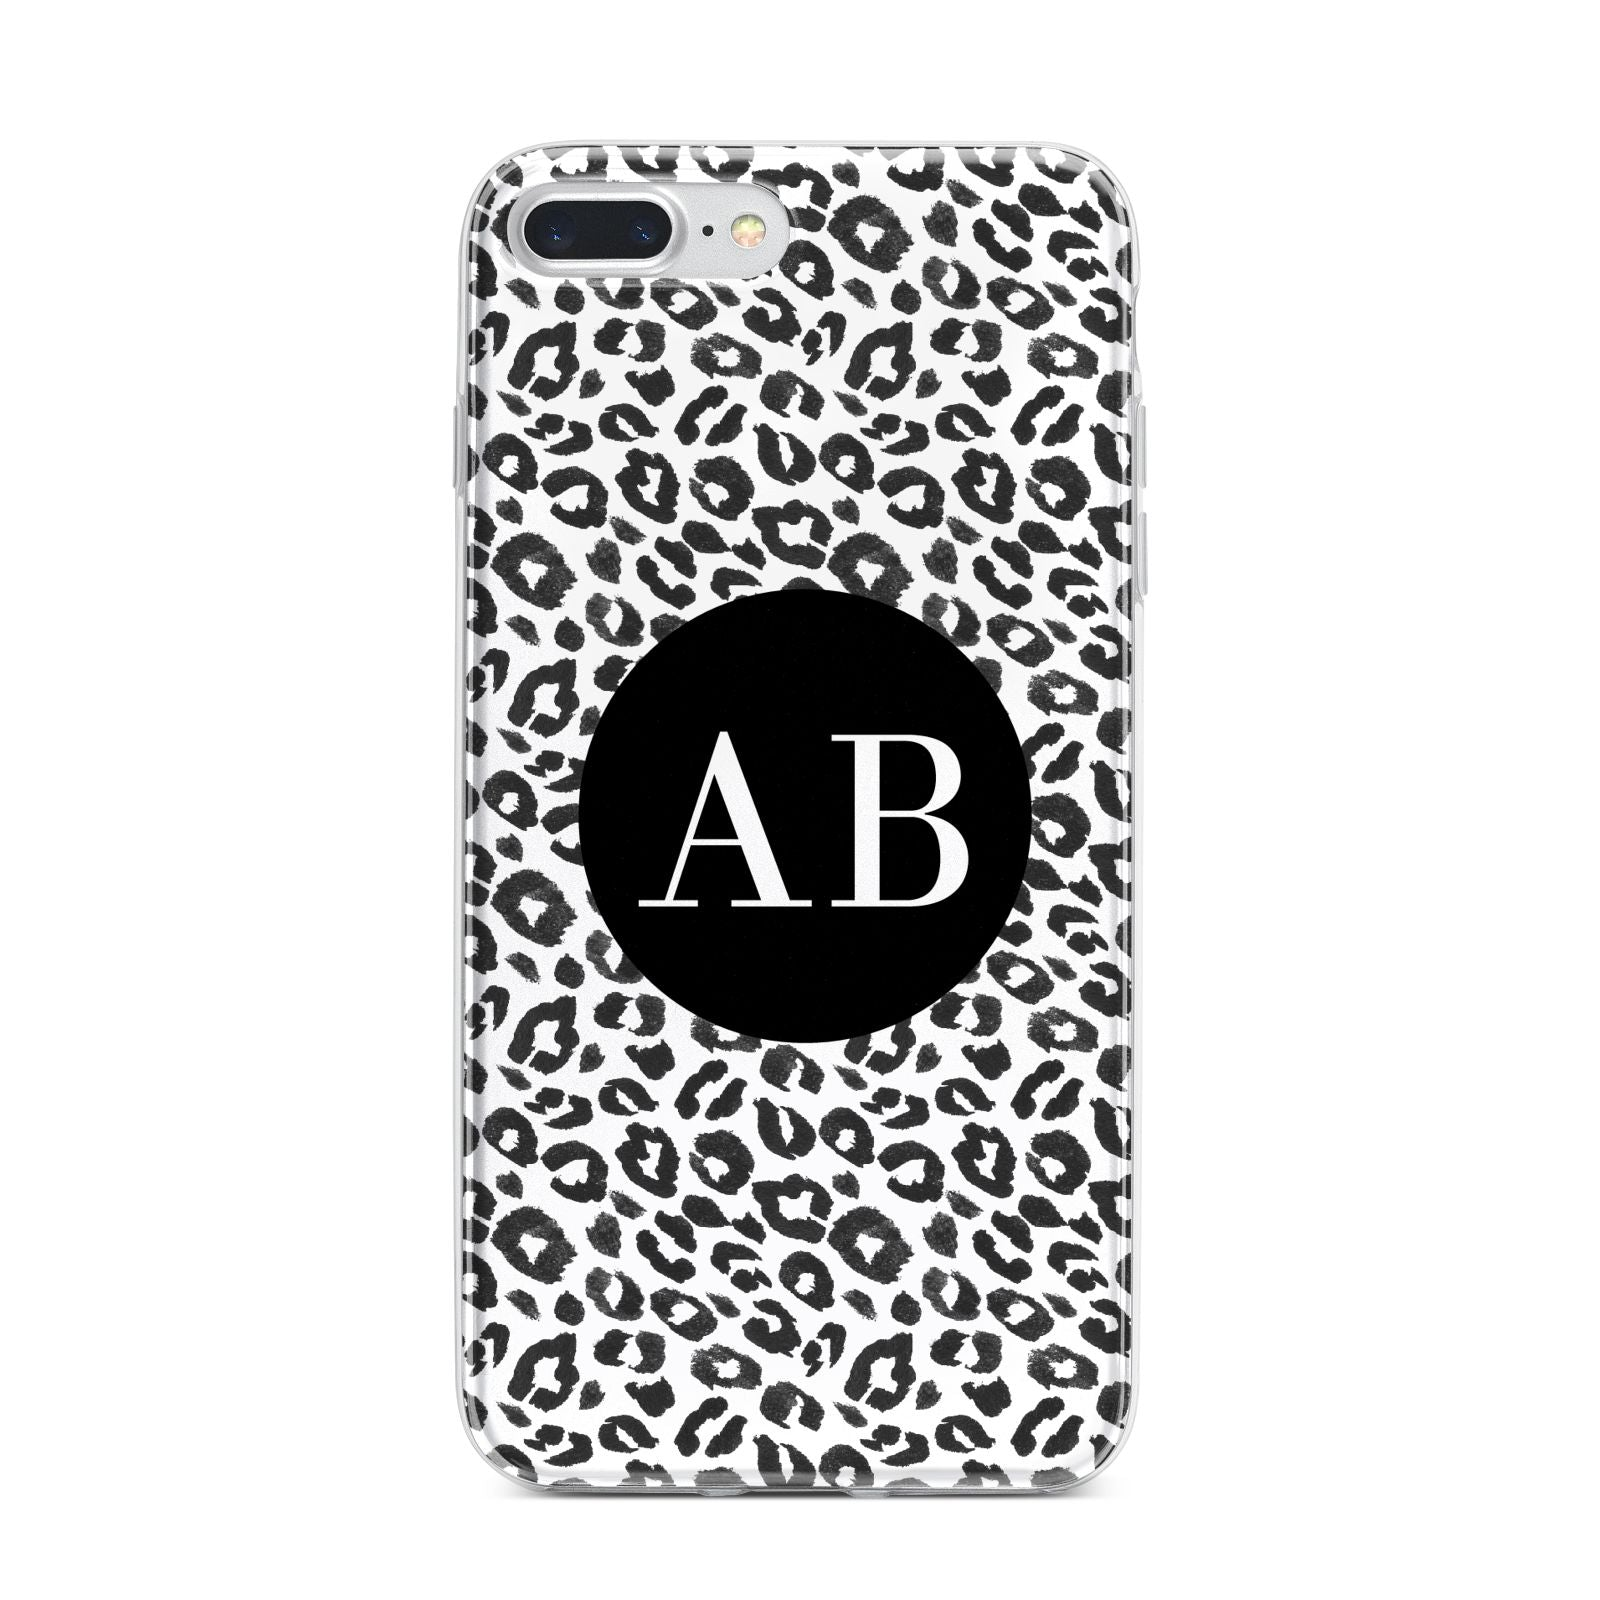 Leopard Print Black and White iPhone 7 Plus Bumper Case on Silver iPhone